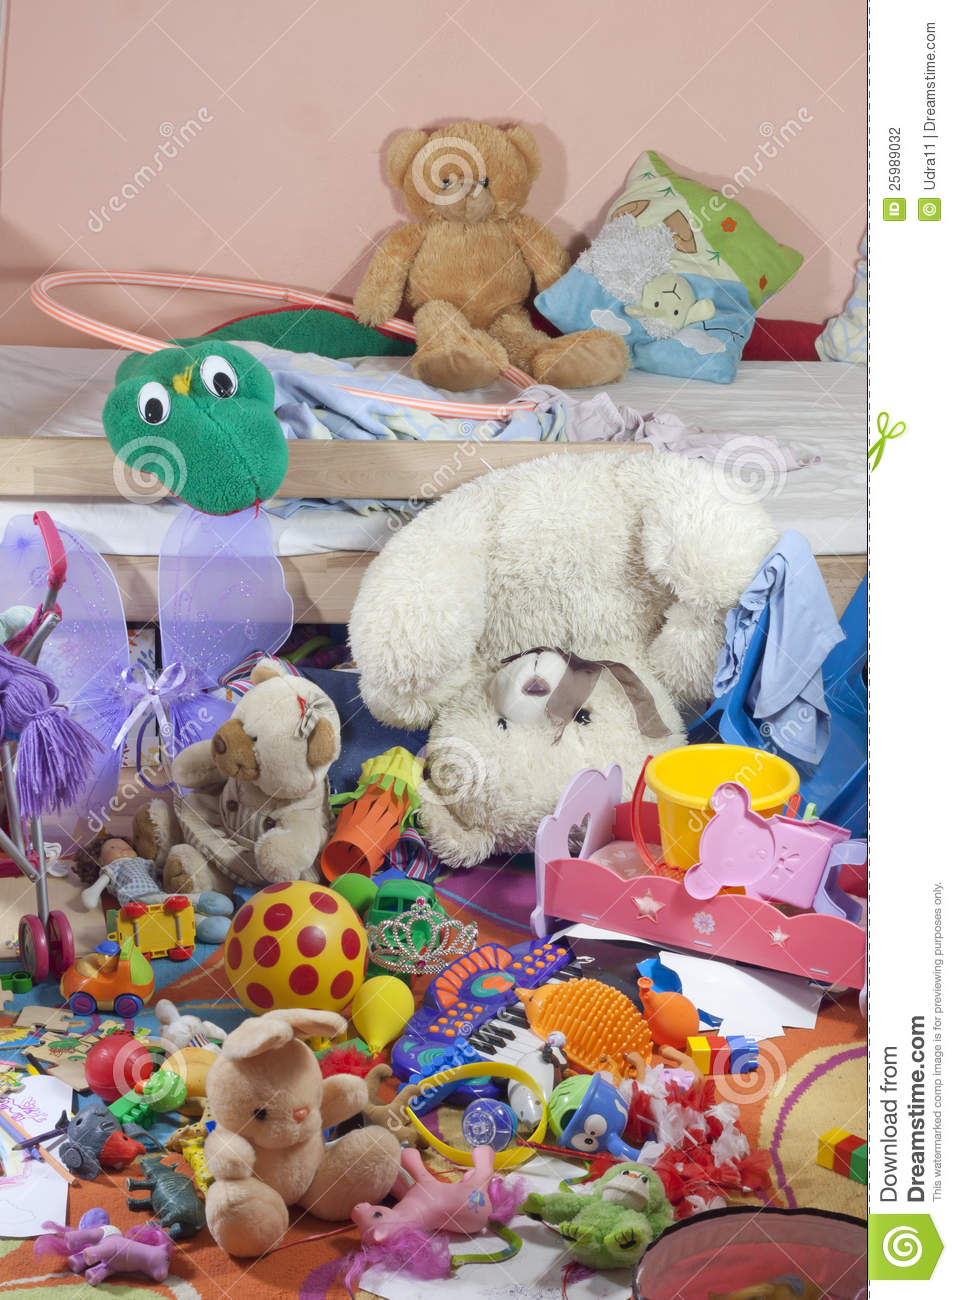 Toddler Toys Photography : Messy kids room with toys stock photography image